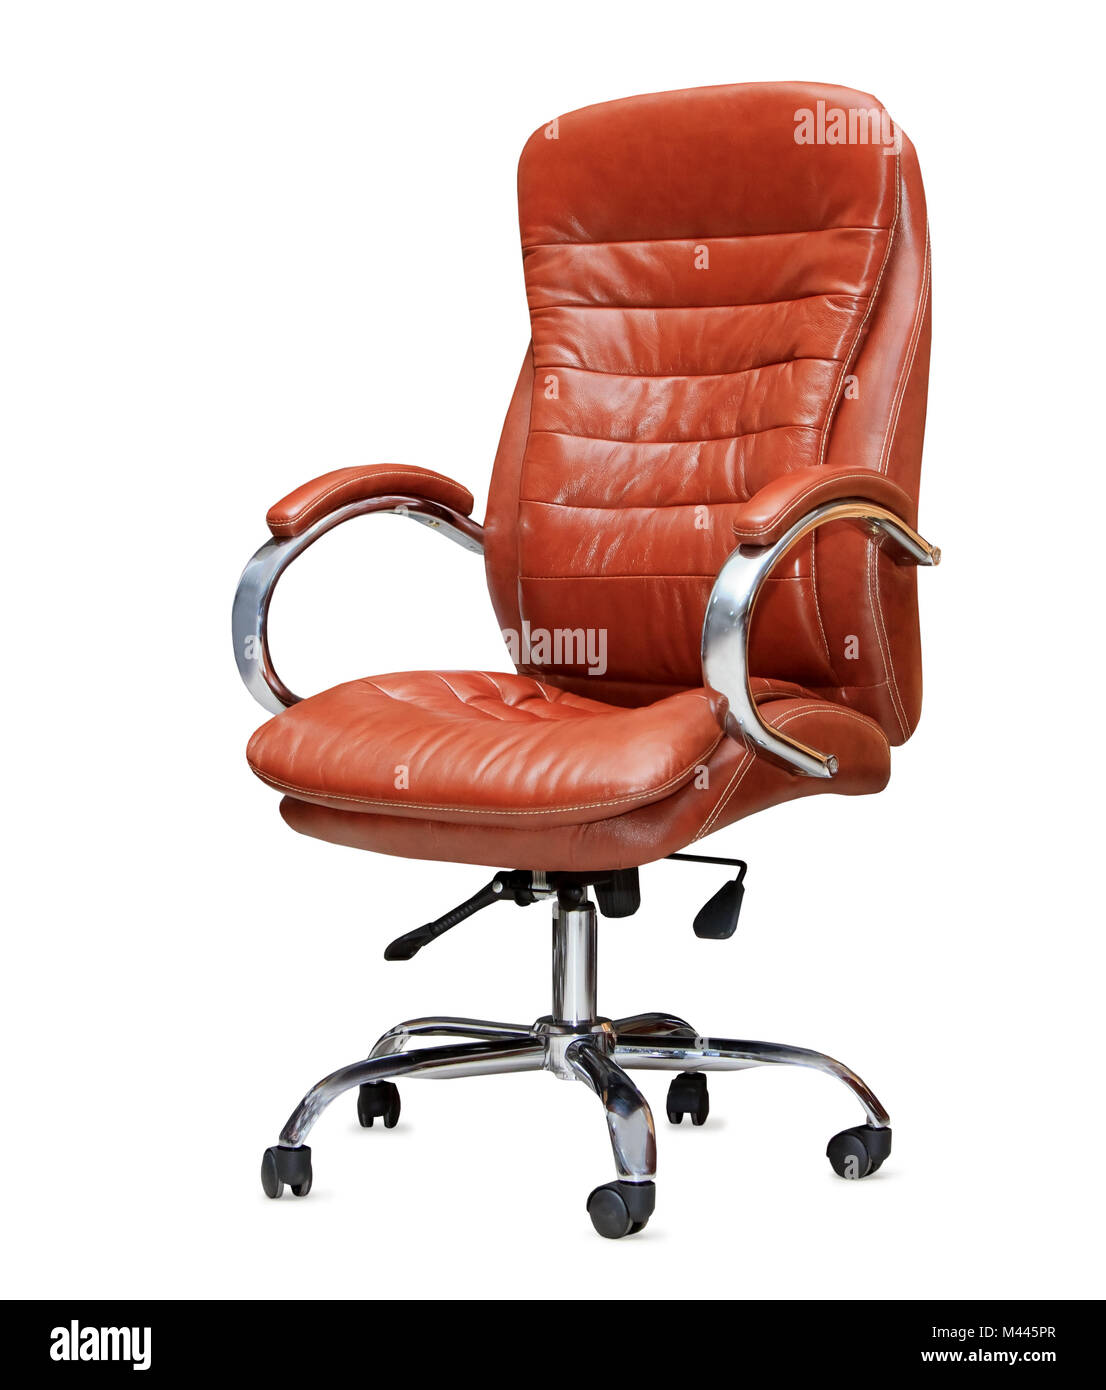 Attrayant The Office Chair From Orange Leather. Isolated   Stock Image